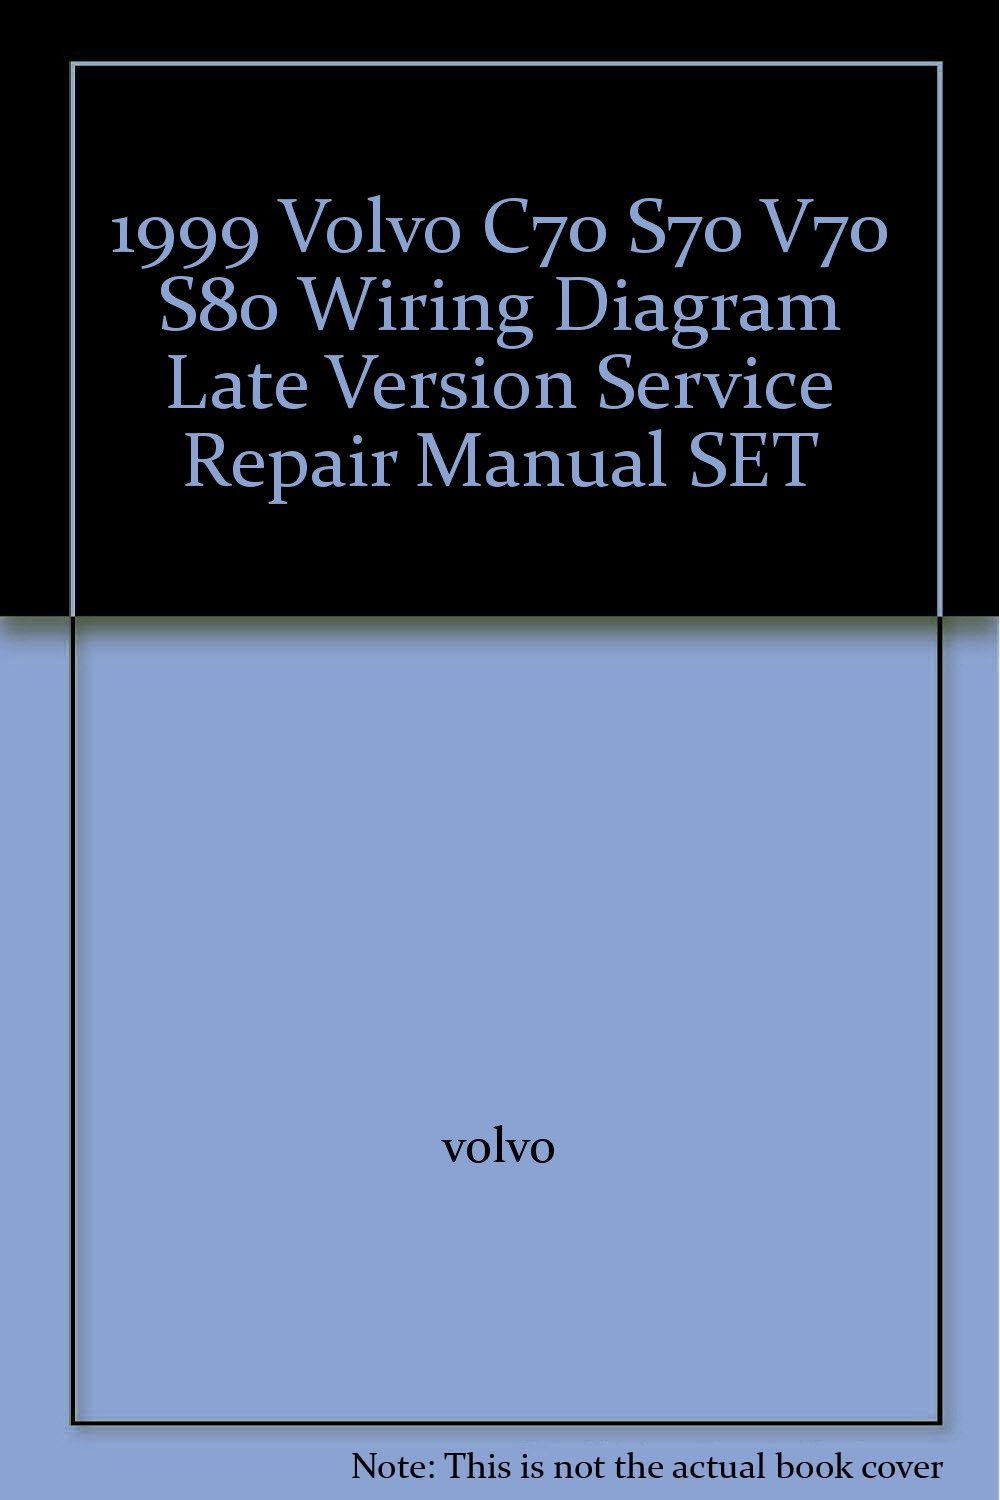 99 Volvo S80 Wiring Diagram The Portal And Forum Of For 1999 V70 Engine C70 S70 Late Version Service Rh Amazon Com Parts Semi Truck